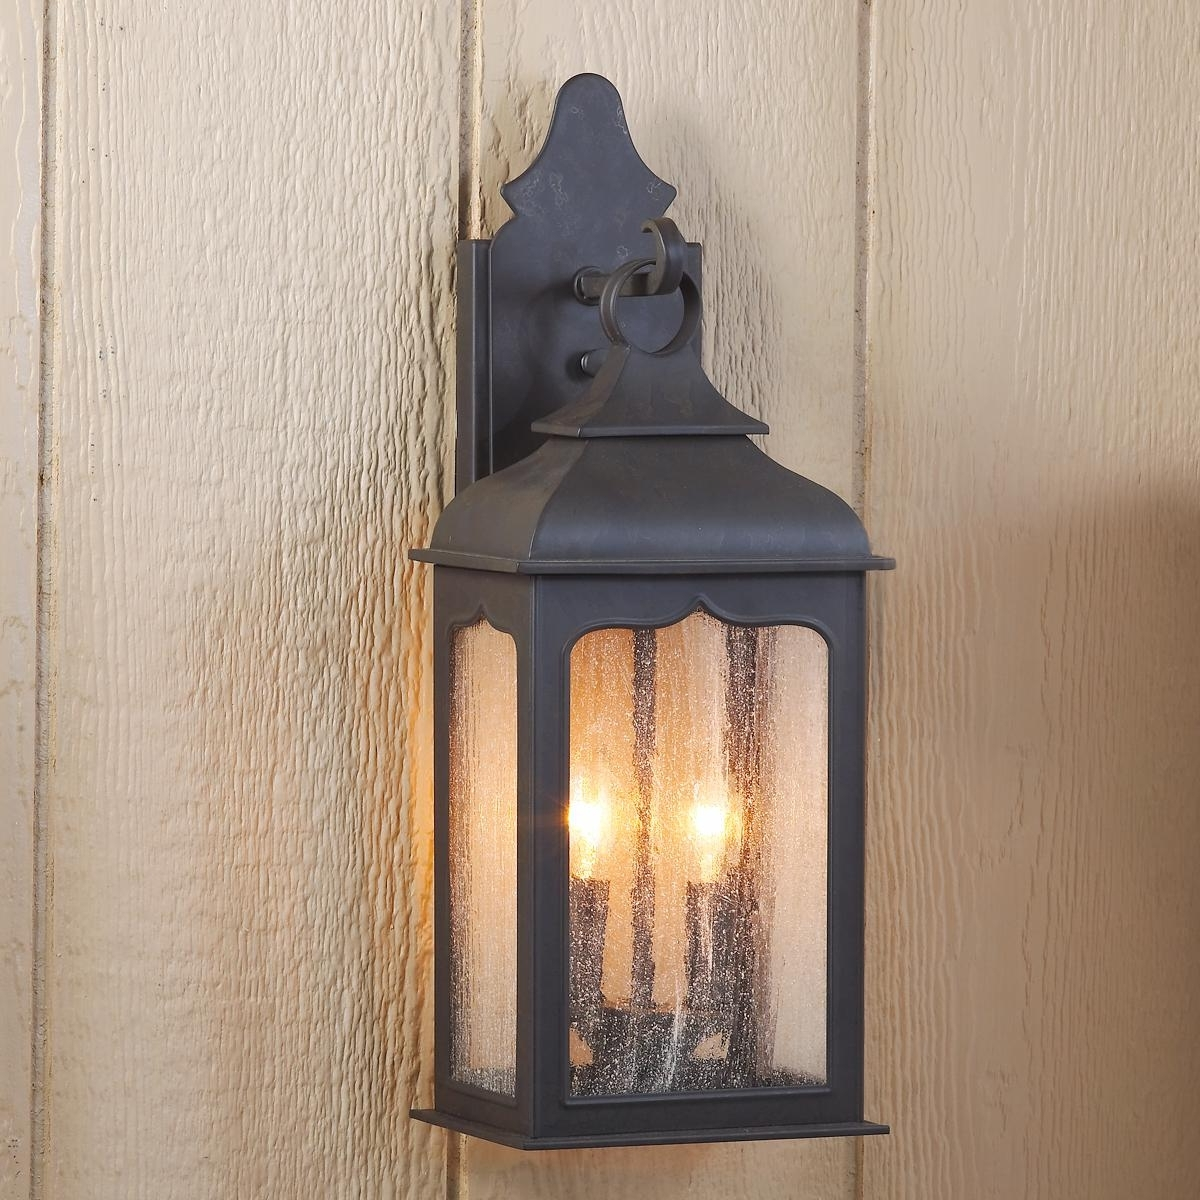 Lighting Intended For 2019 Gothic Outdoor Wall Lighting (View 13 of 20)